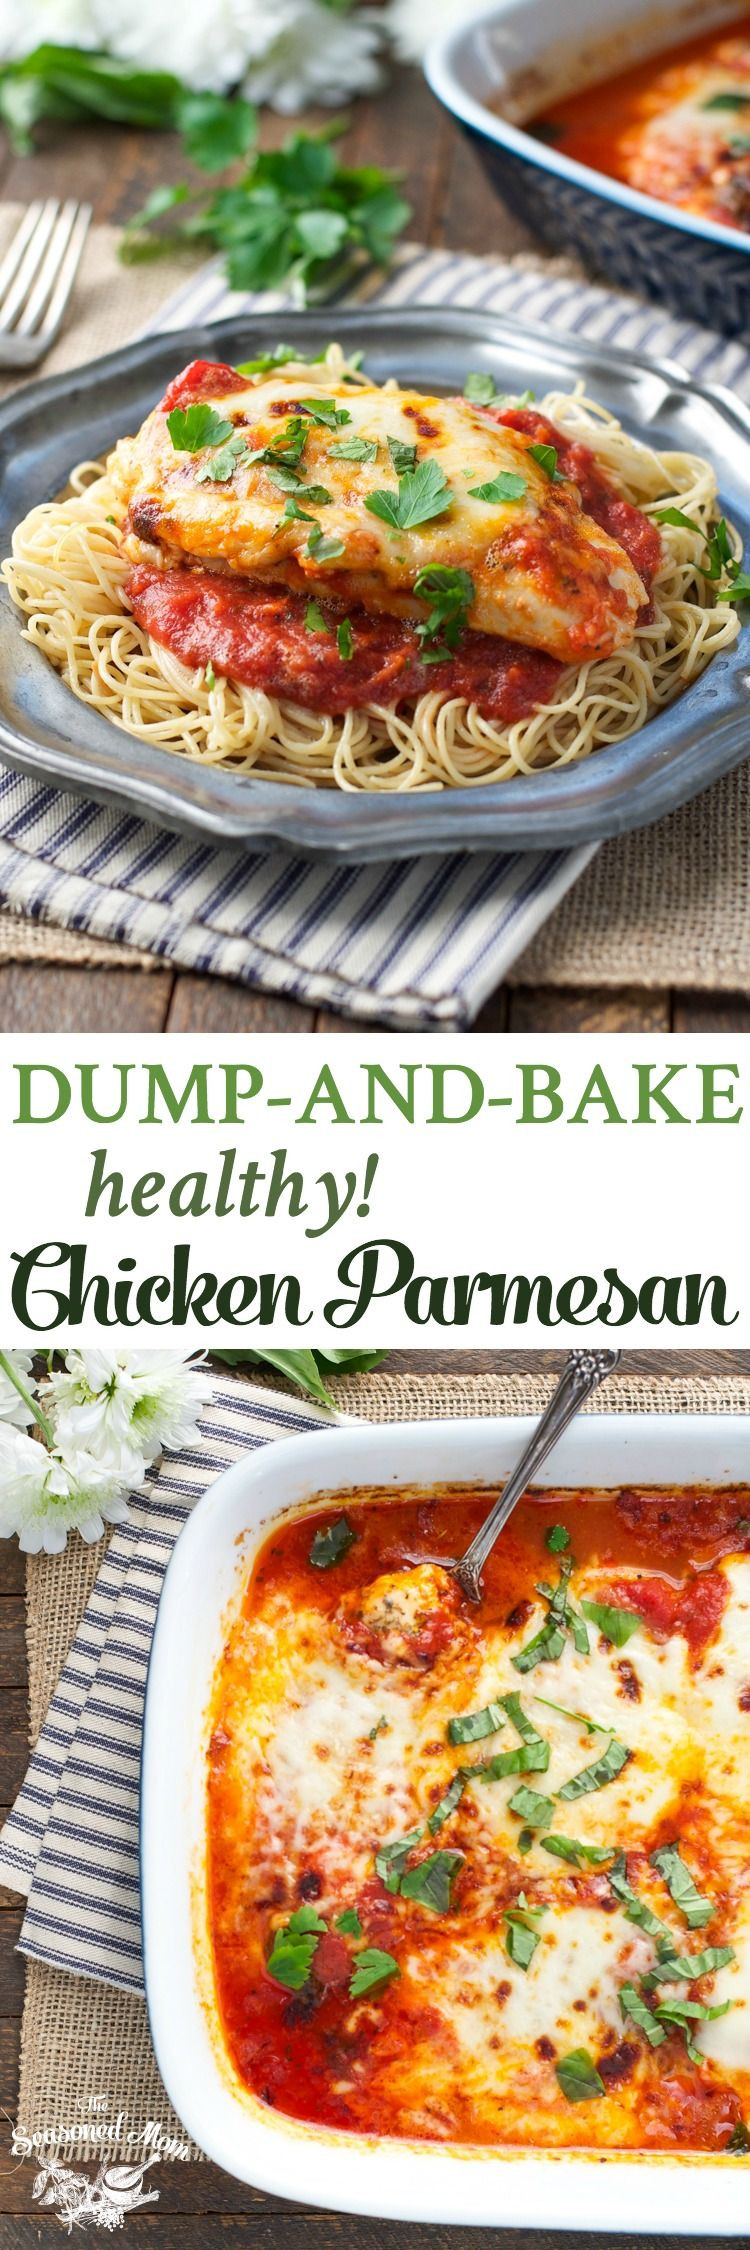 Healthy Dump Dinners  Dump and Bake Healthy Chicken Parmesan Recipe